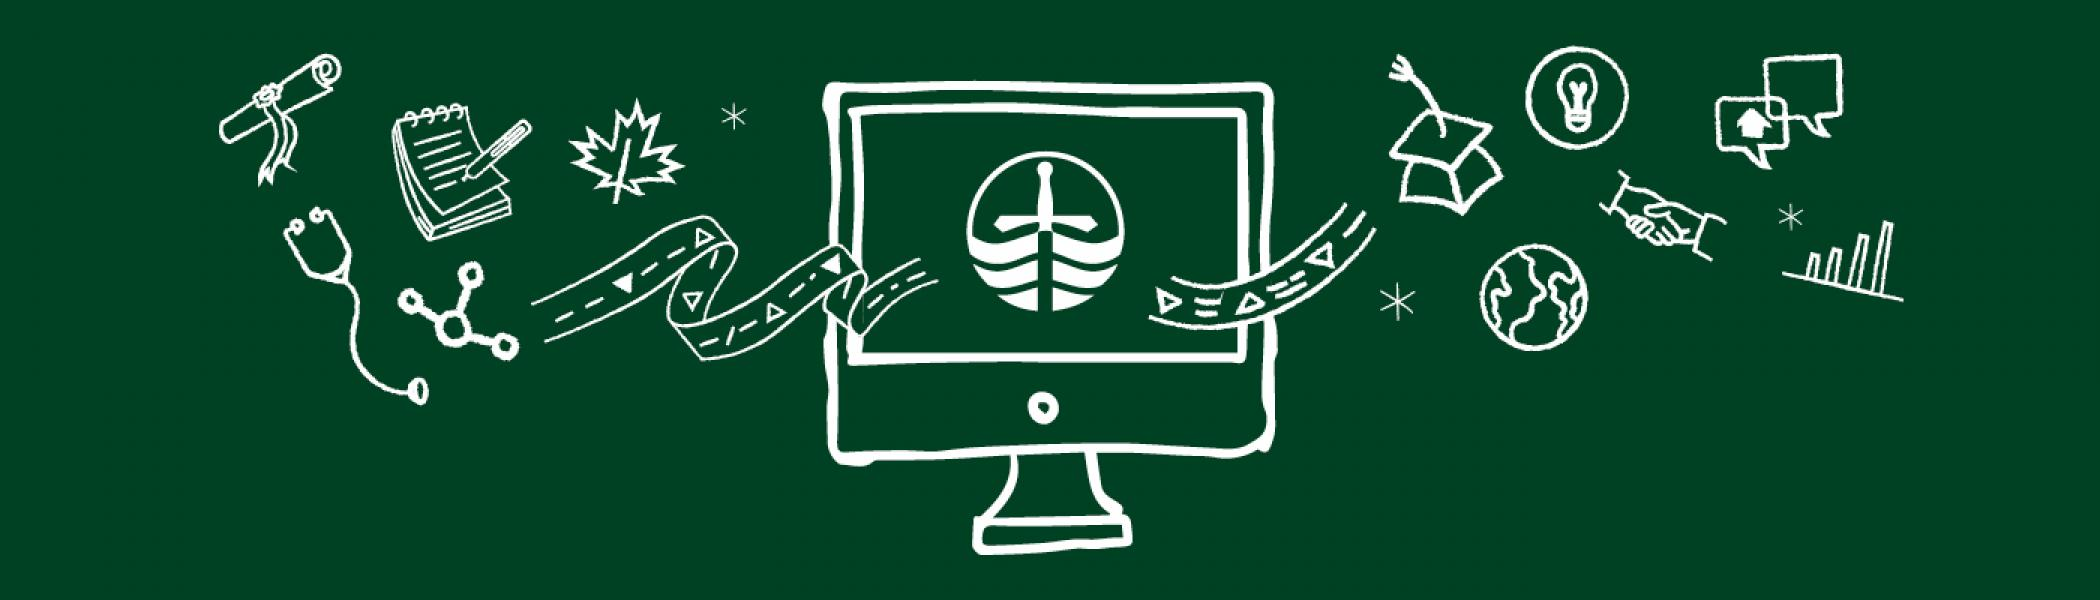 Illustration of a computer with symbols representing different subjects floating through it.